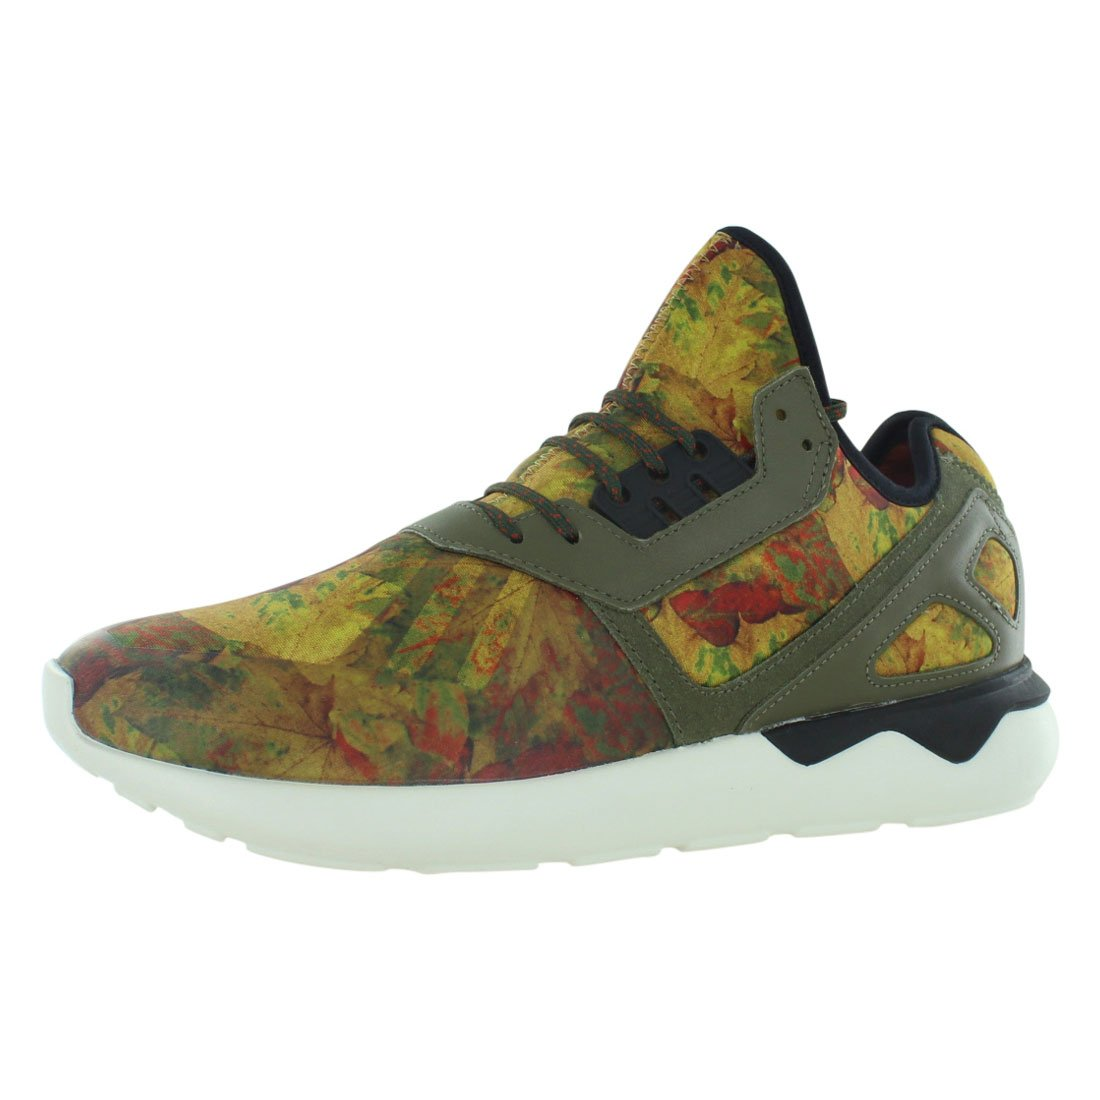 finest selection ef867 1e2df Galleon - Adidas MENS TUBULAR RUNNER SNEAKER Multi-Color -  Footwear Sneakers 9